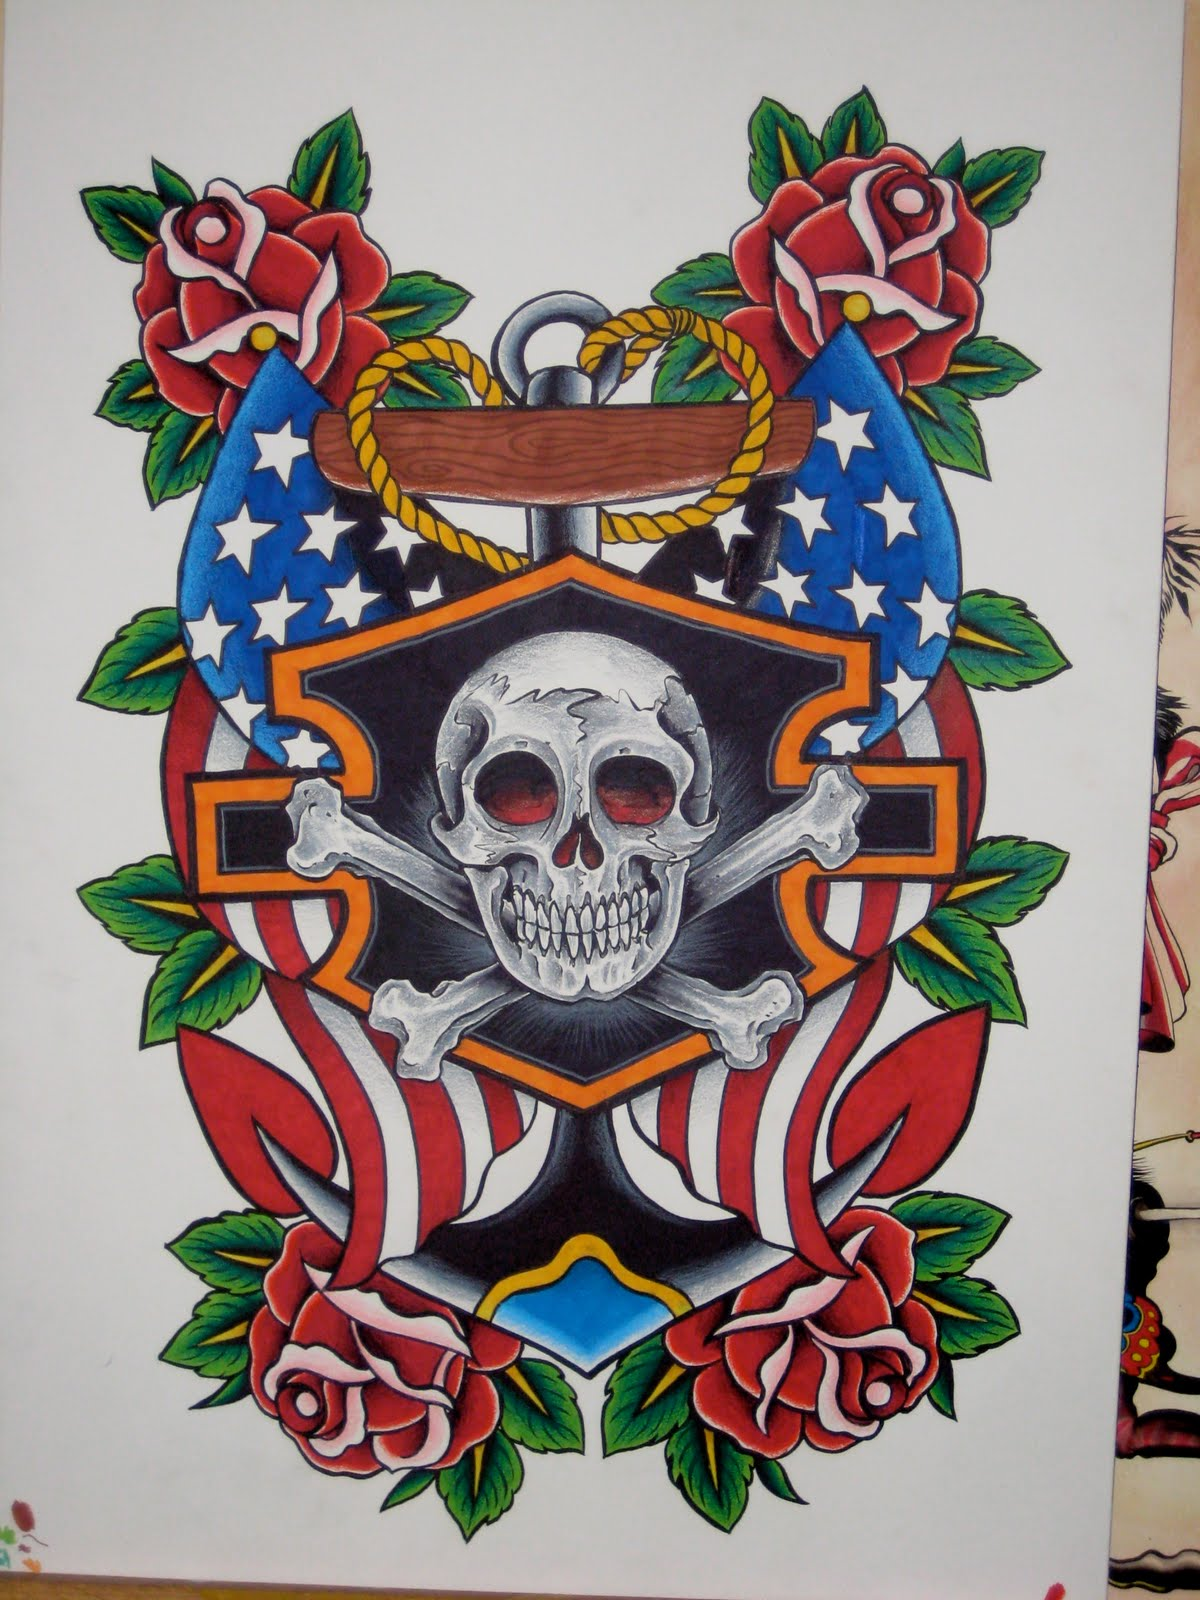 The Inspiring Harley Davidson Tattoos Designs Images